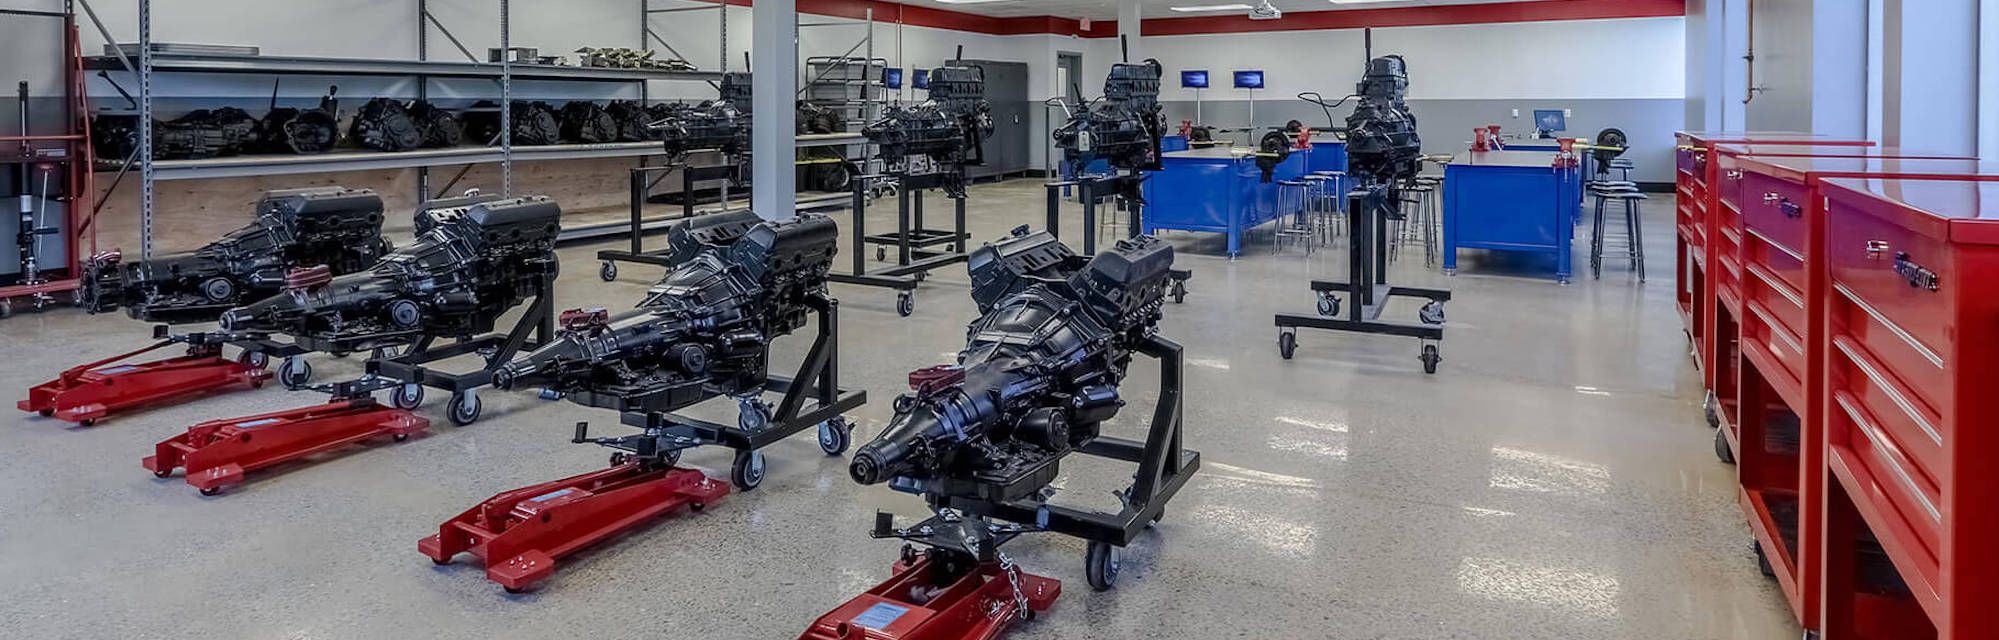 Universal Technical Institute Opens Campus in Bloomfield, NJ